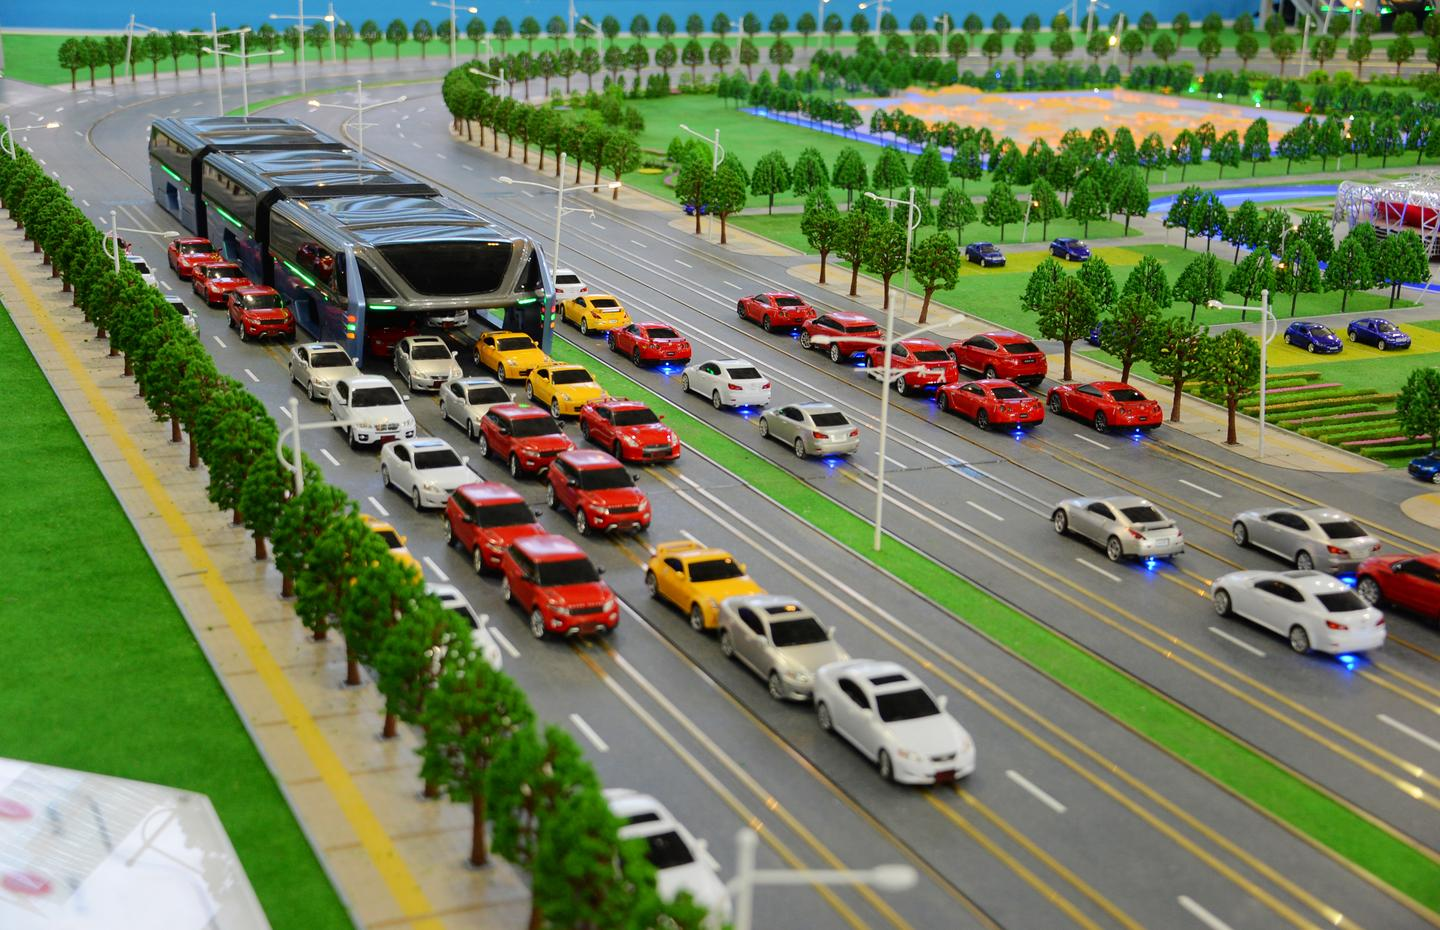 A functioning model of the Elevated Transit Bus was on show at the China Beijing International High-Tech Expo (CHITEC) this week